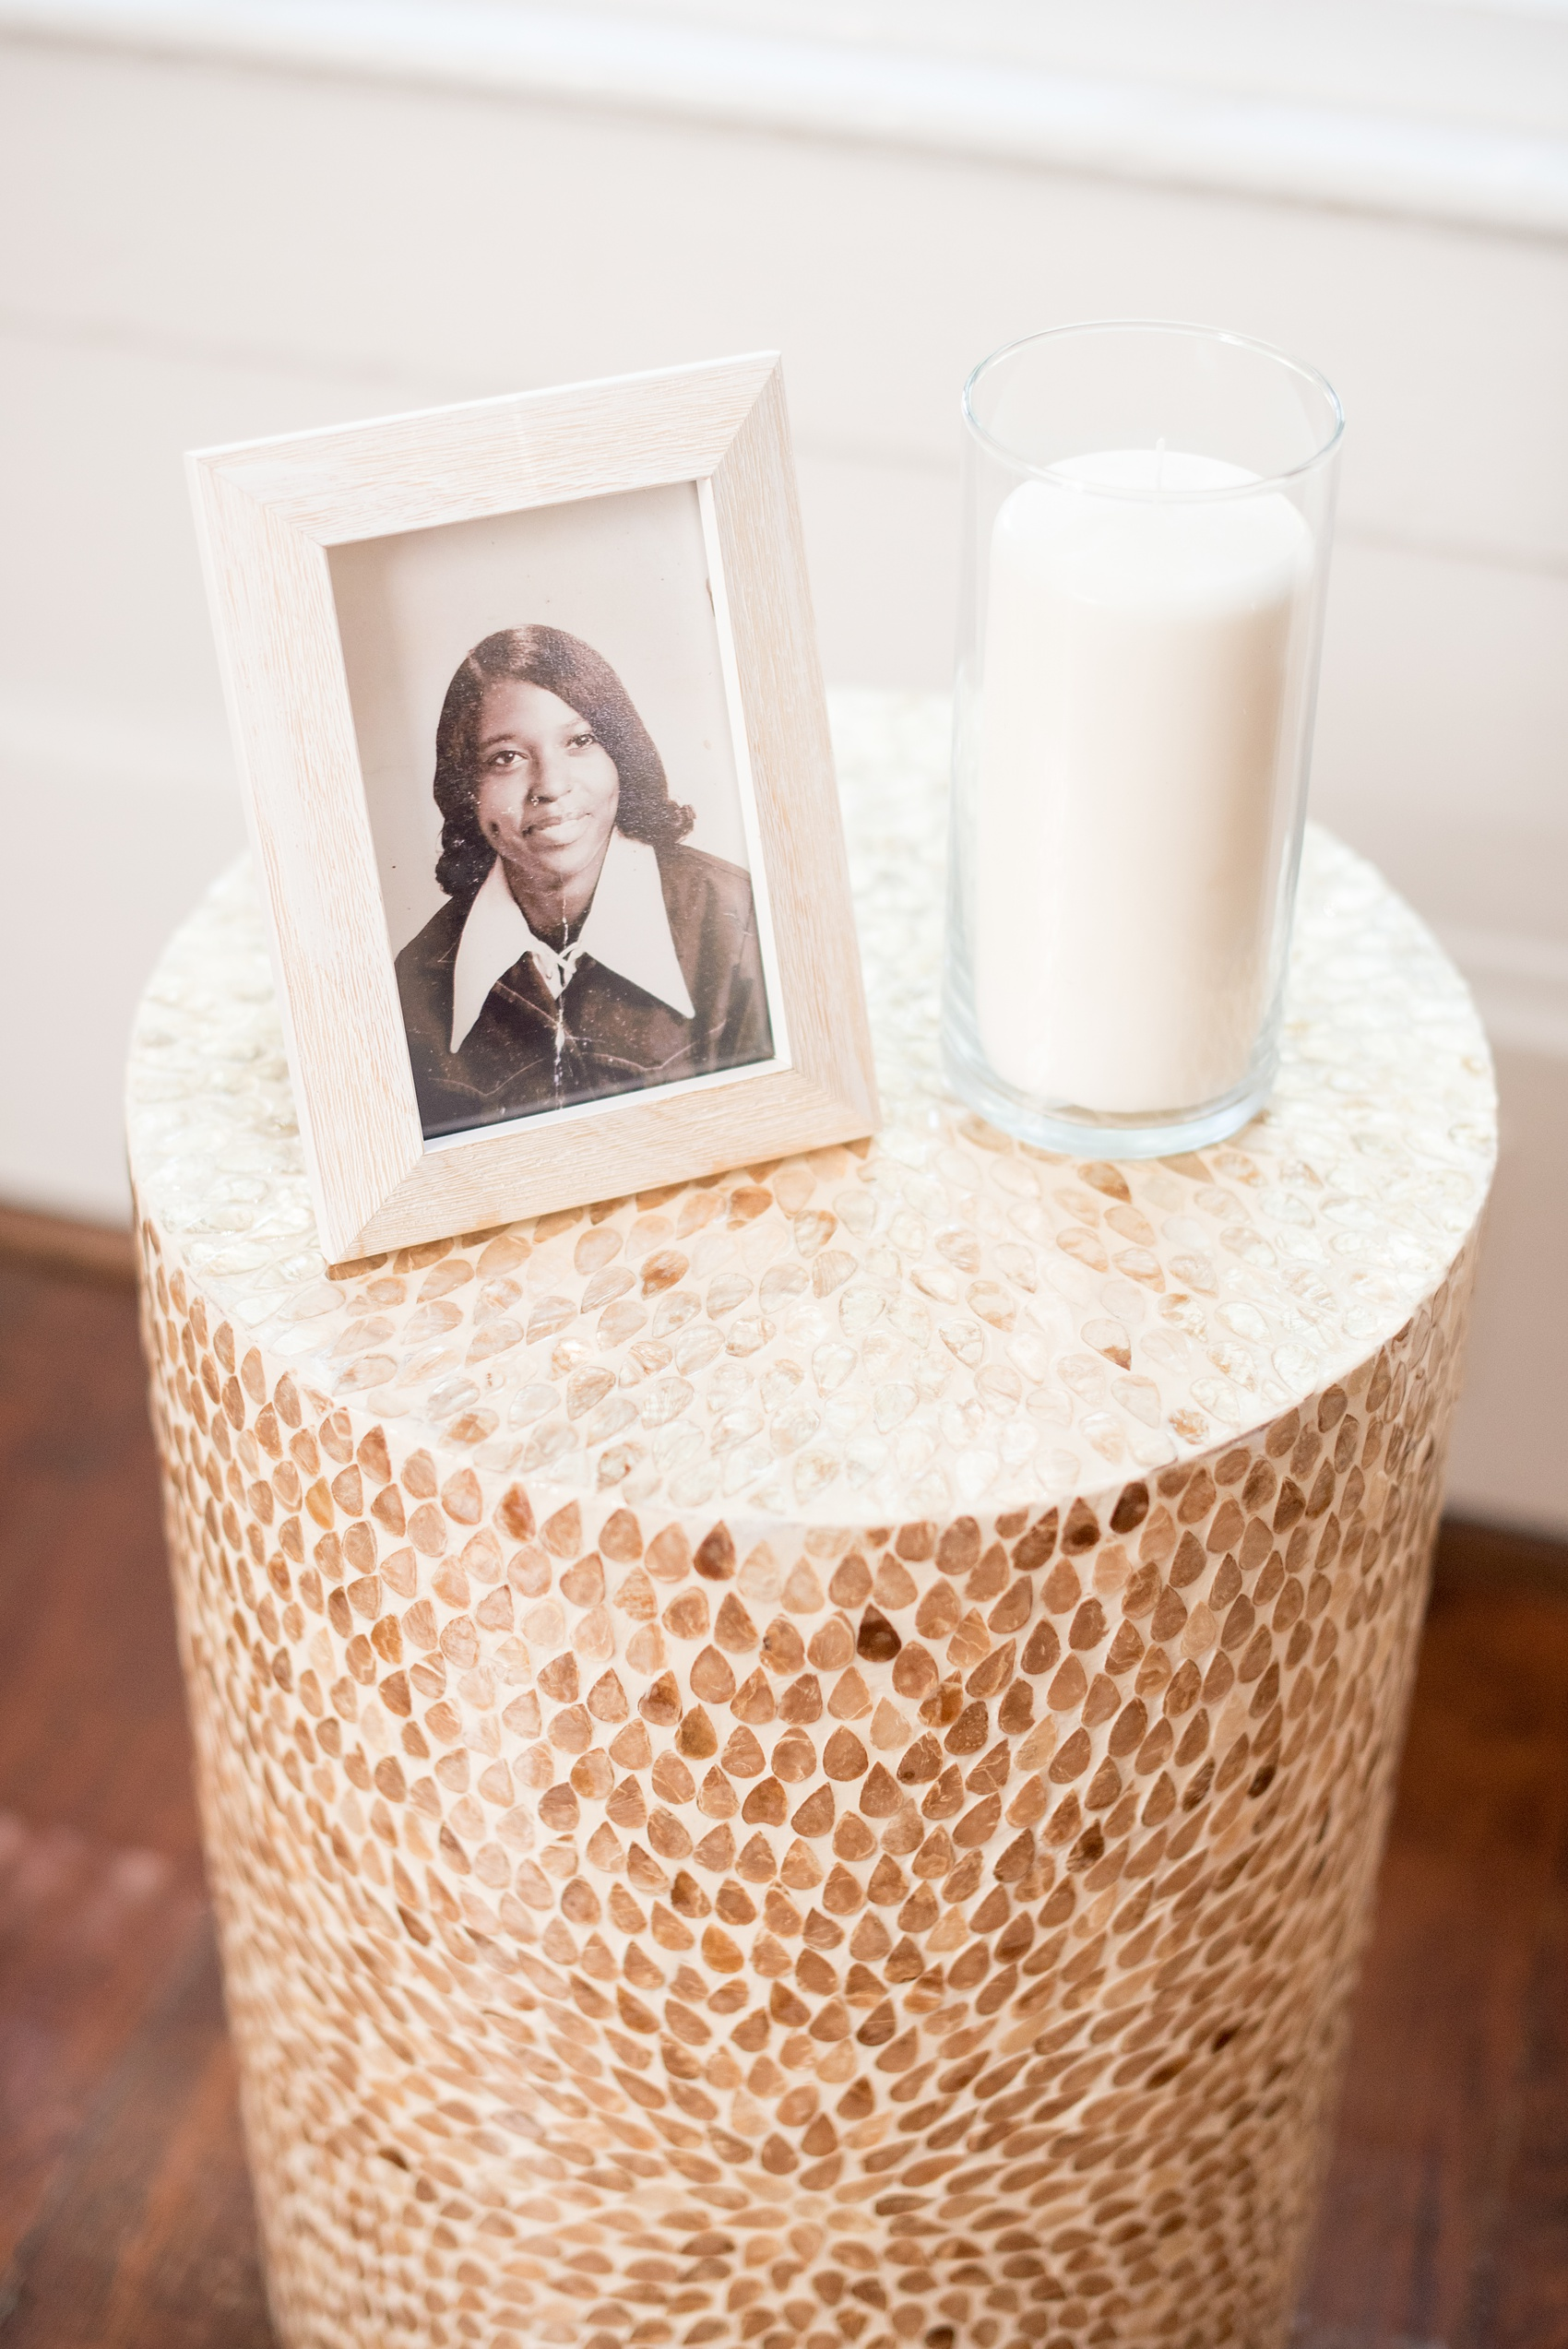 Mikkel Paige Photography pictures of a wedding at Leslie-Alford Mim's House in North Carolina for a Mad Dash Weddings event. Photo of the groom's mother's photo and remembrance candle on a side table in the ceremony room.